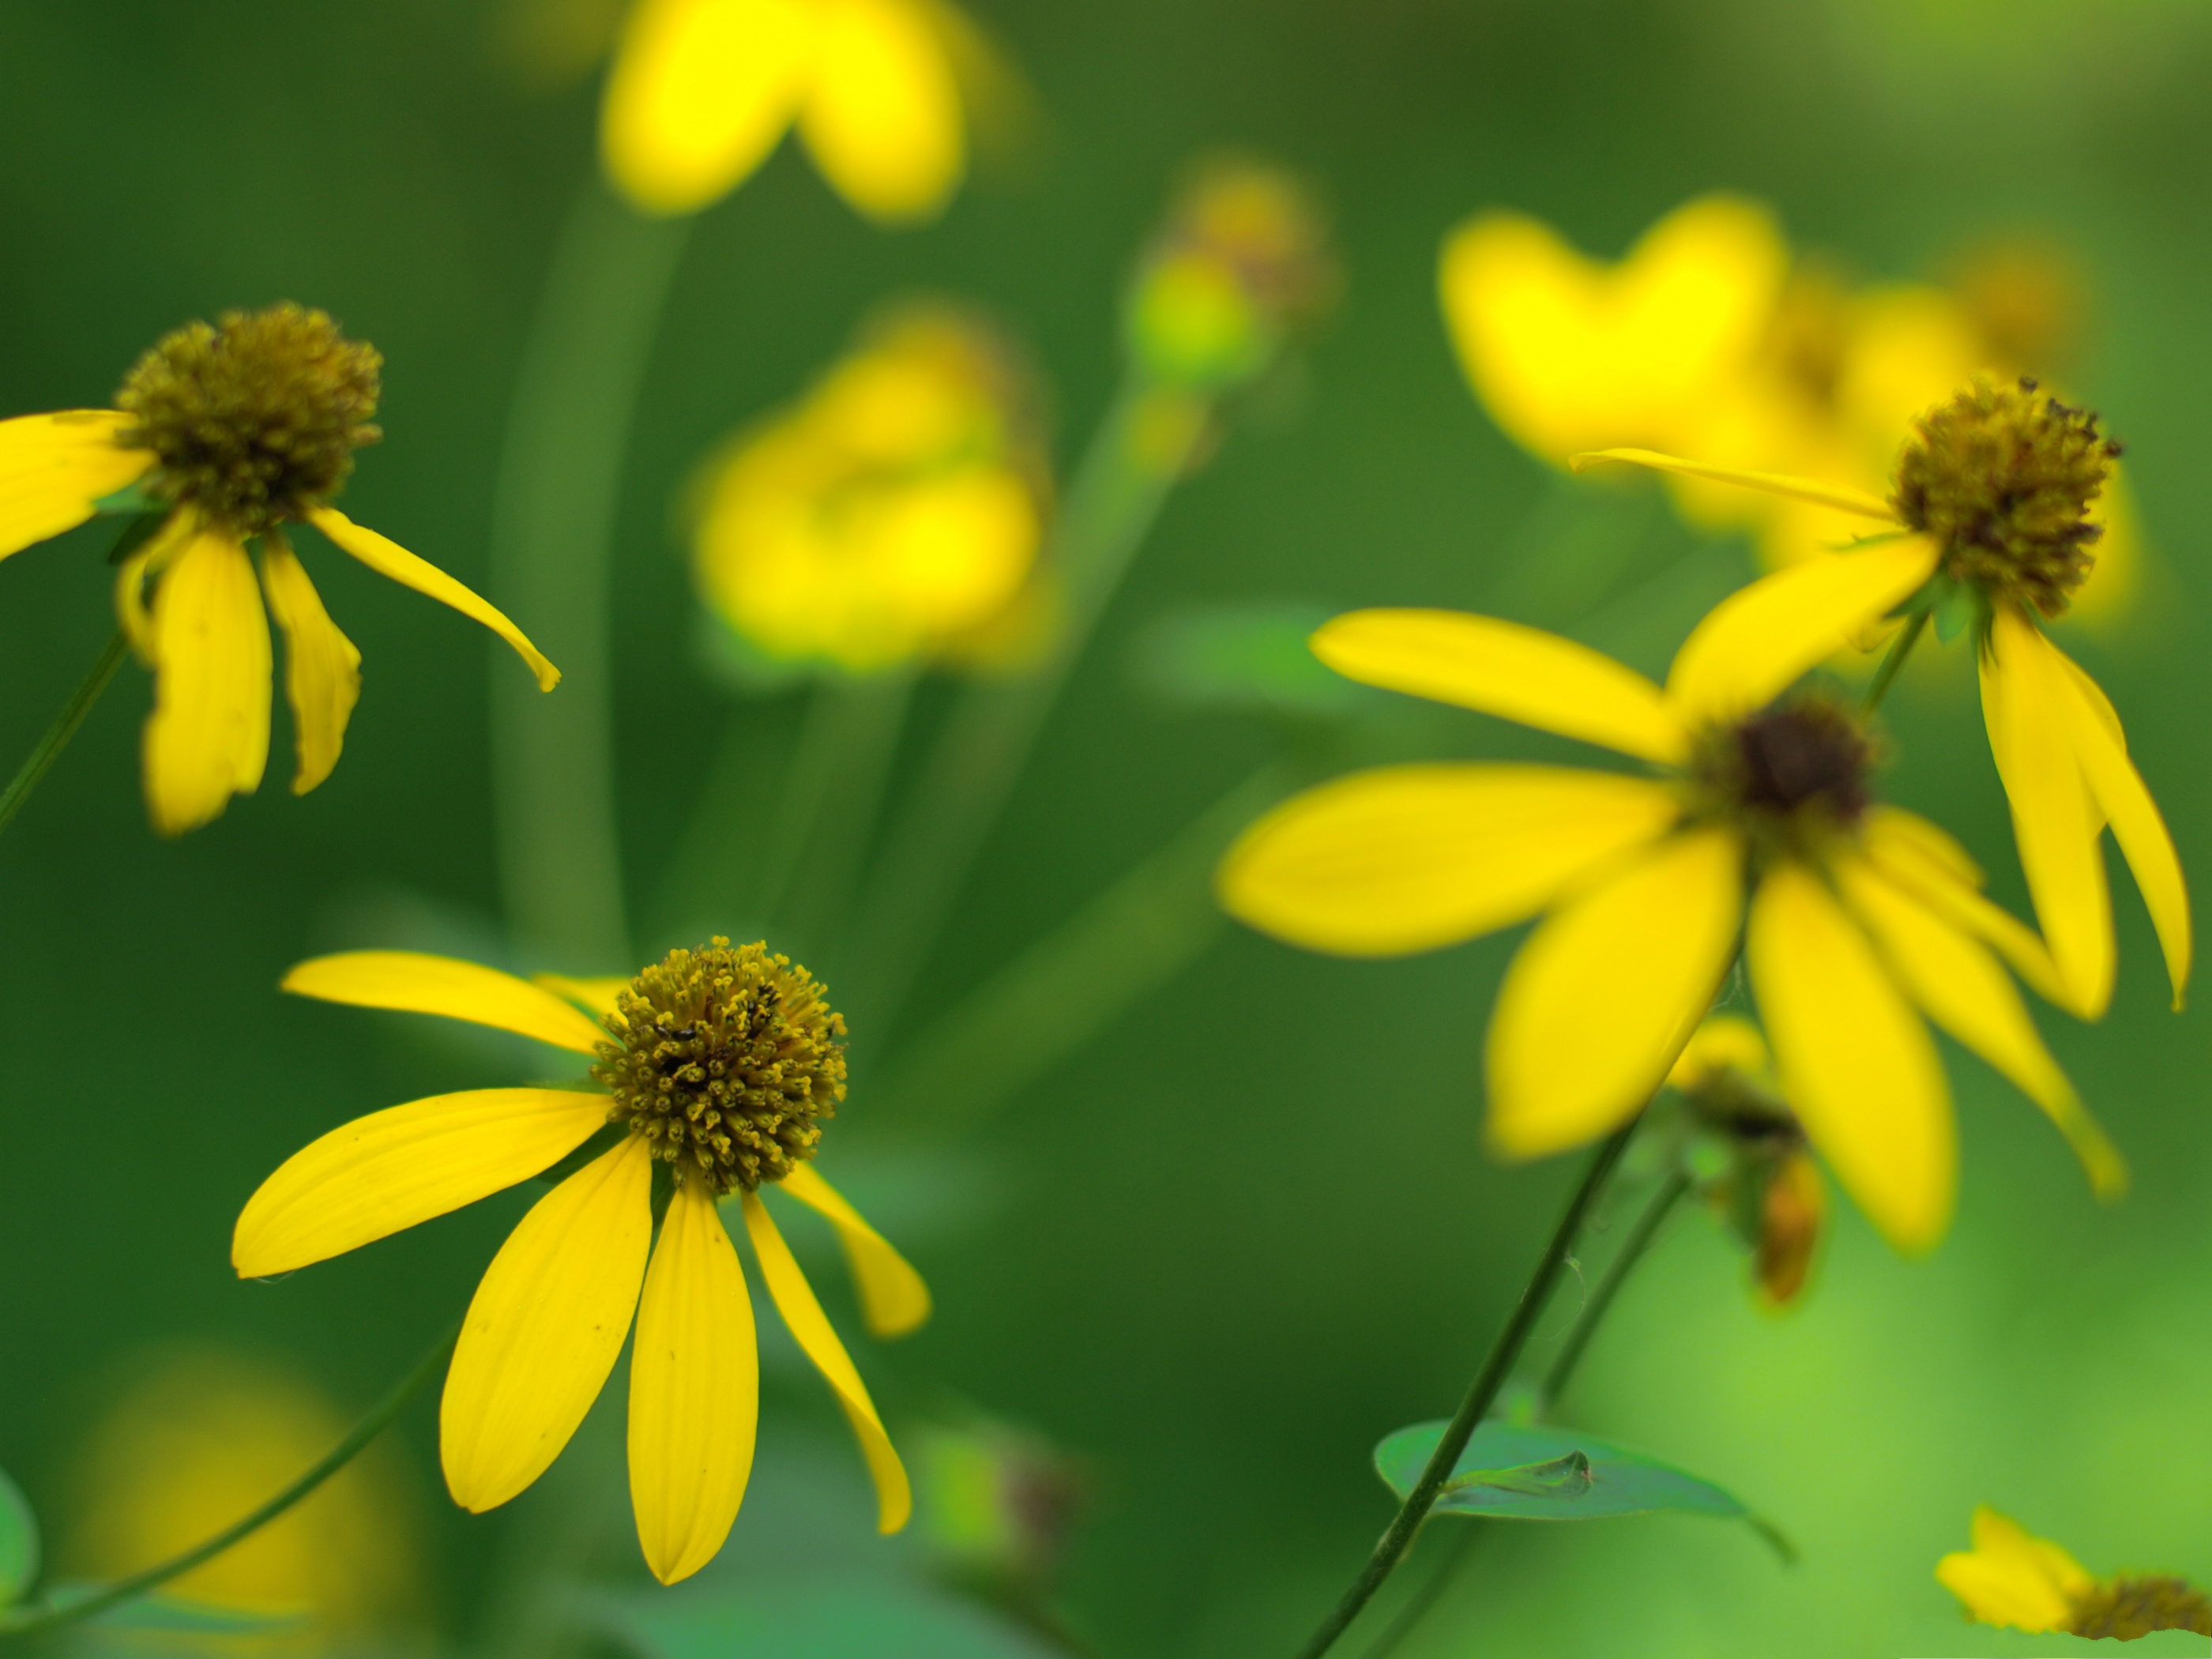 click to free download the wallpaper--Images of Coneflower, Yellow Blooming Flowers on Green Background  2800X2100 free wallpaper download